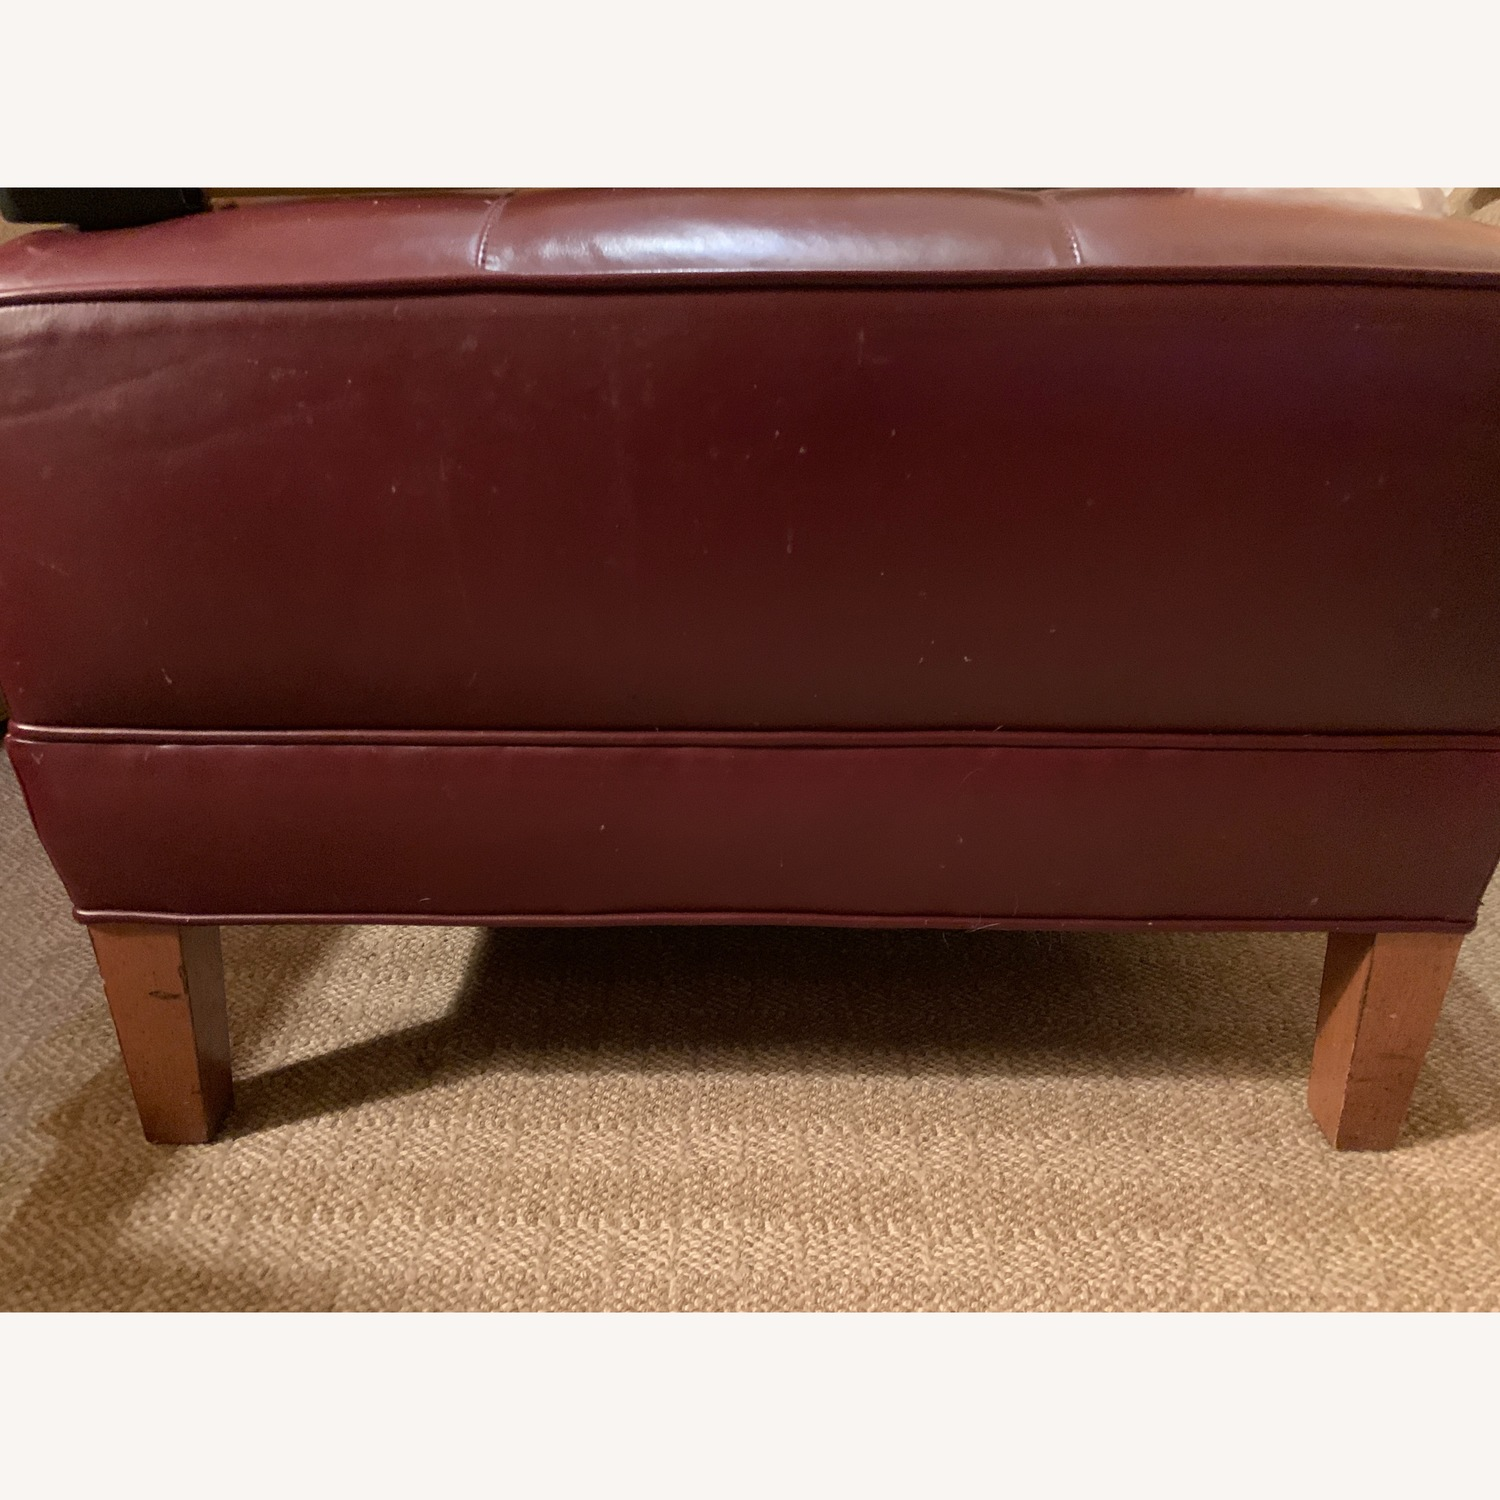 Ethan Allen Burgundy Tufted Leather Ottoman - image-1